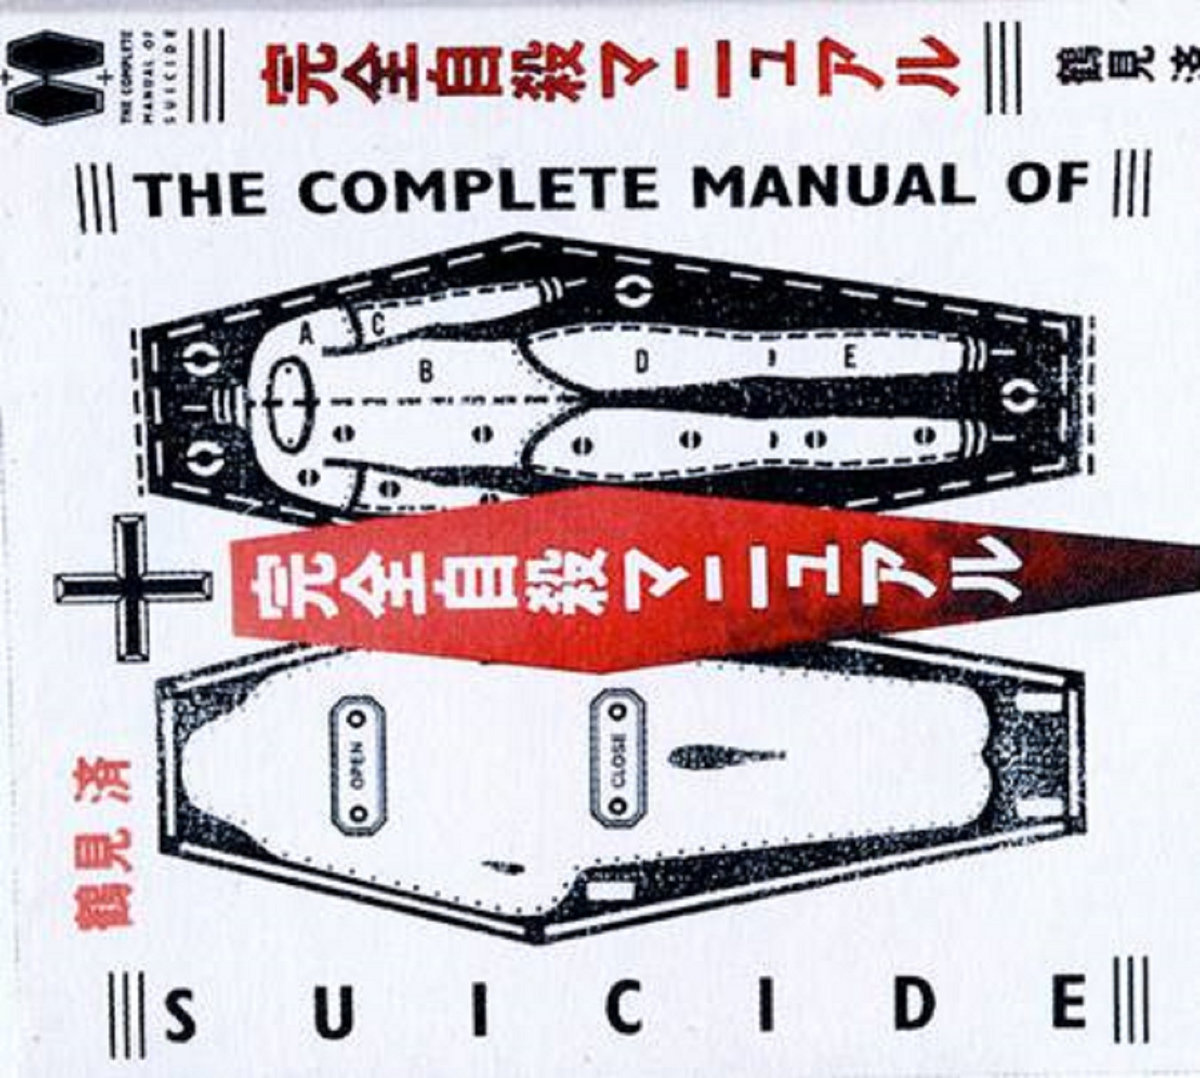 The complete-manual-of-suicide-pdf.